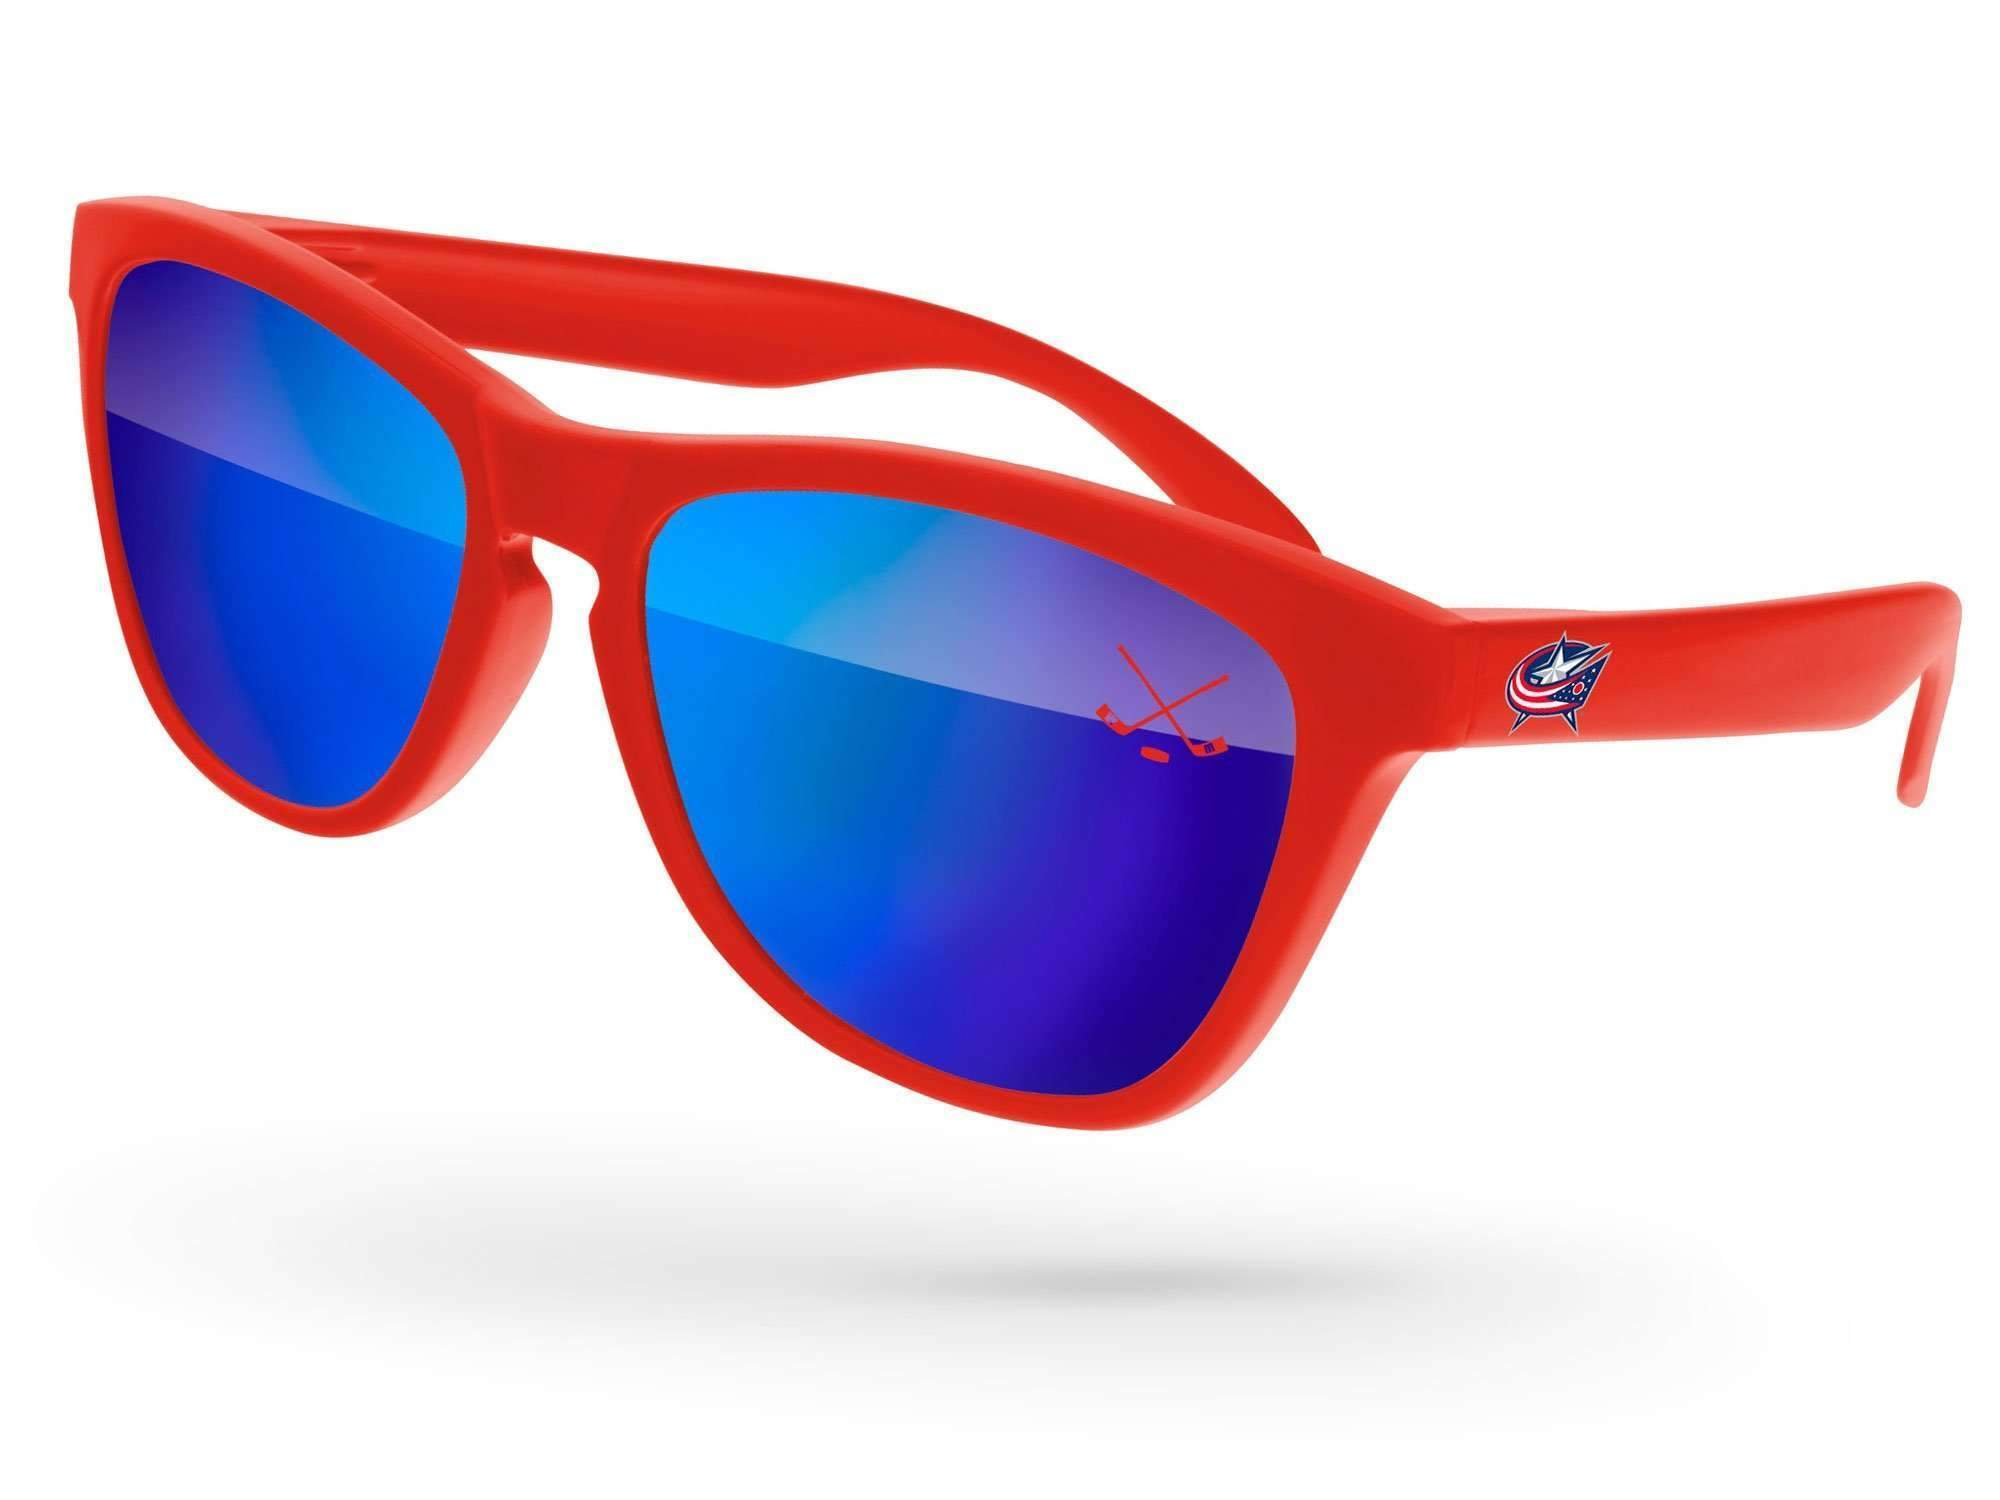 Frog Mirror Promotional Sunglasses w/ 1-color lens imprint & full-color temple imprint